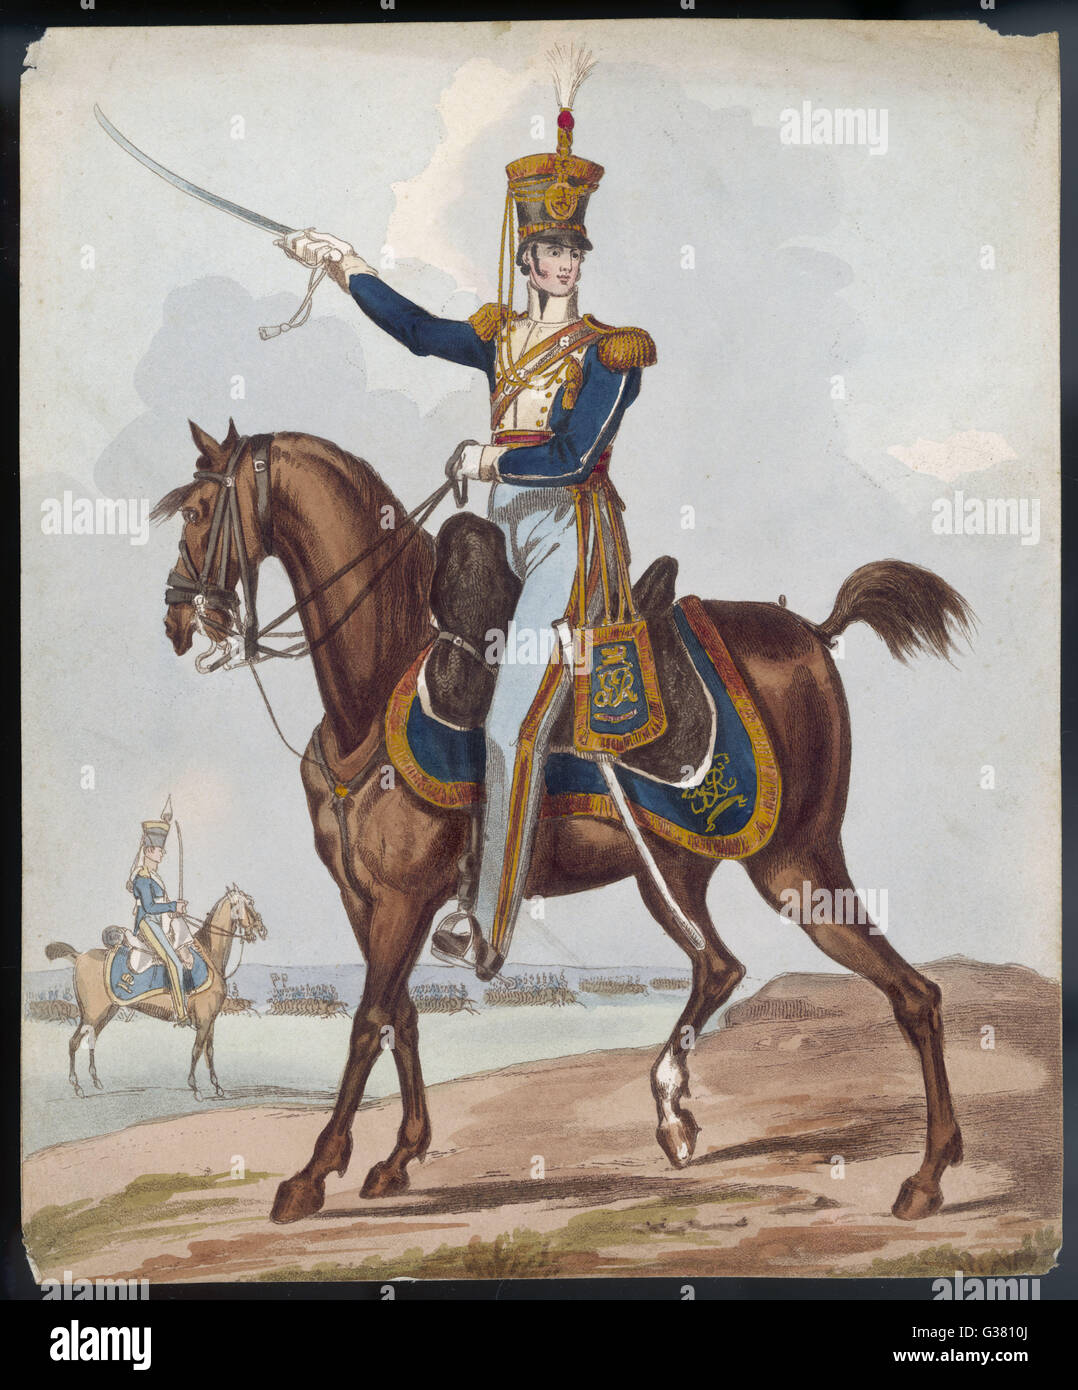 Cavalry officer          Date: circa 1830 - Stock Image